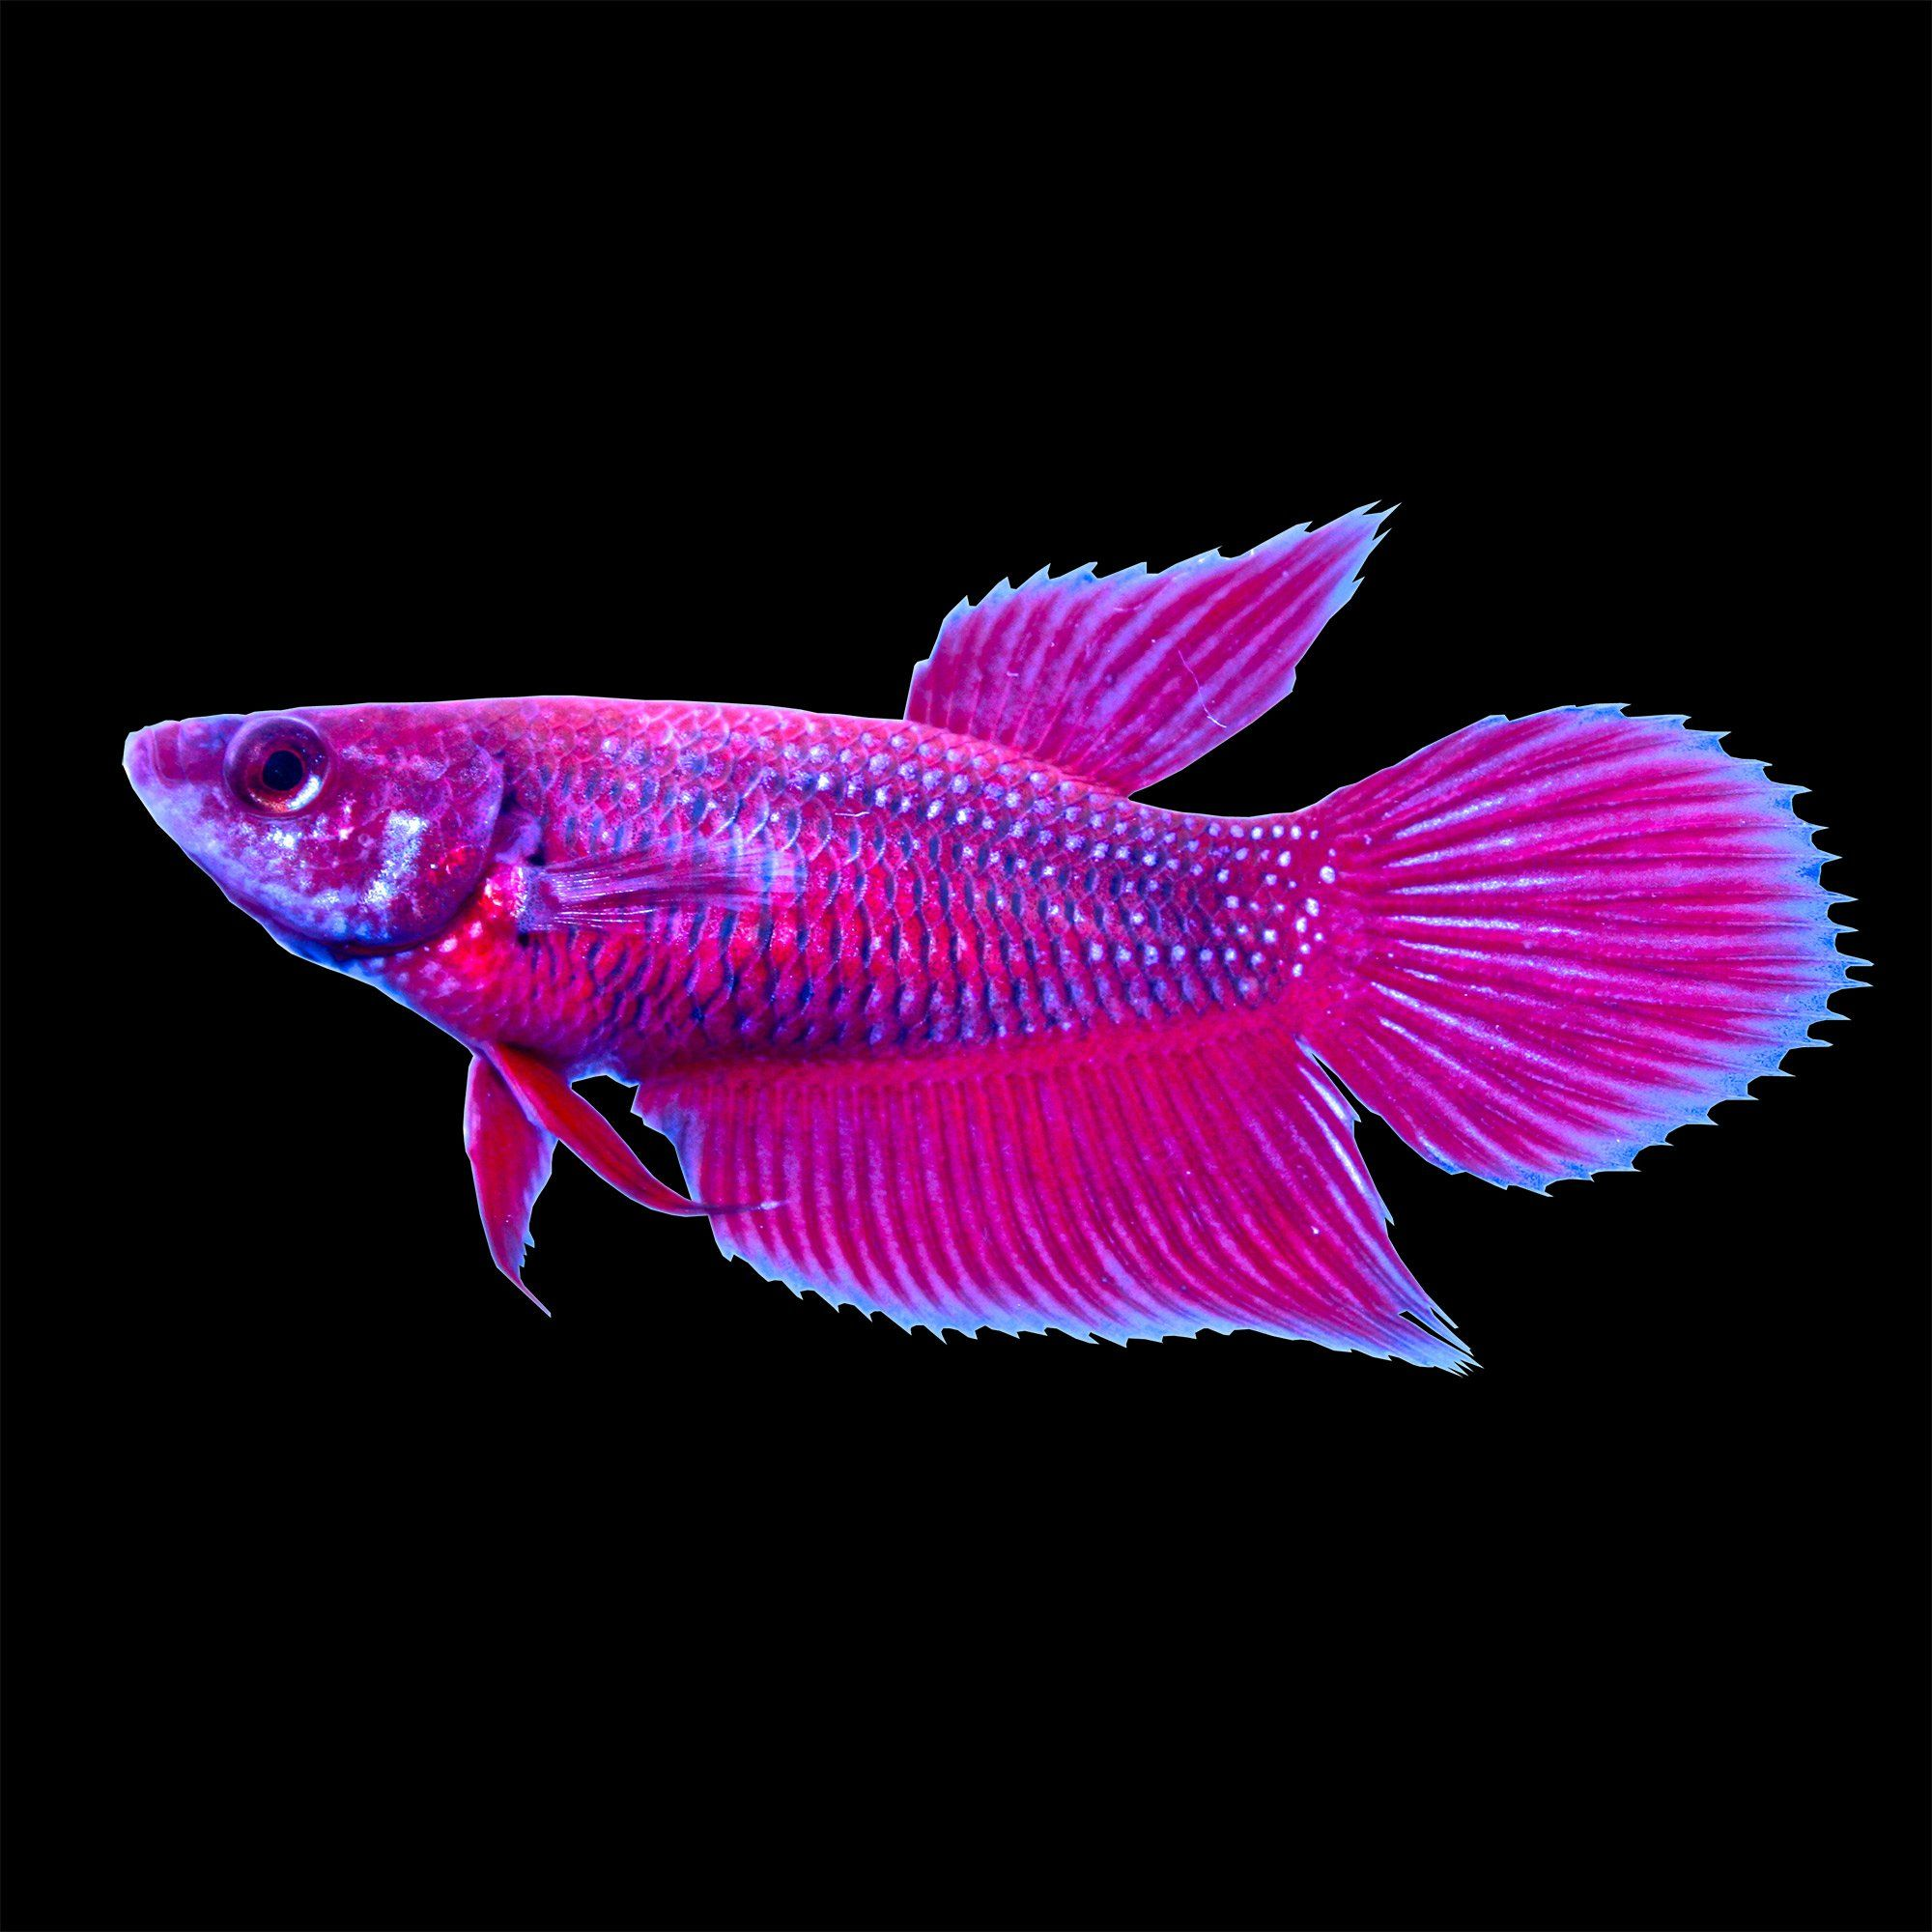 Pin By Dream Travels Guide On Curiosidades In 2020 Betta Fish Betta Pet Fish